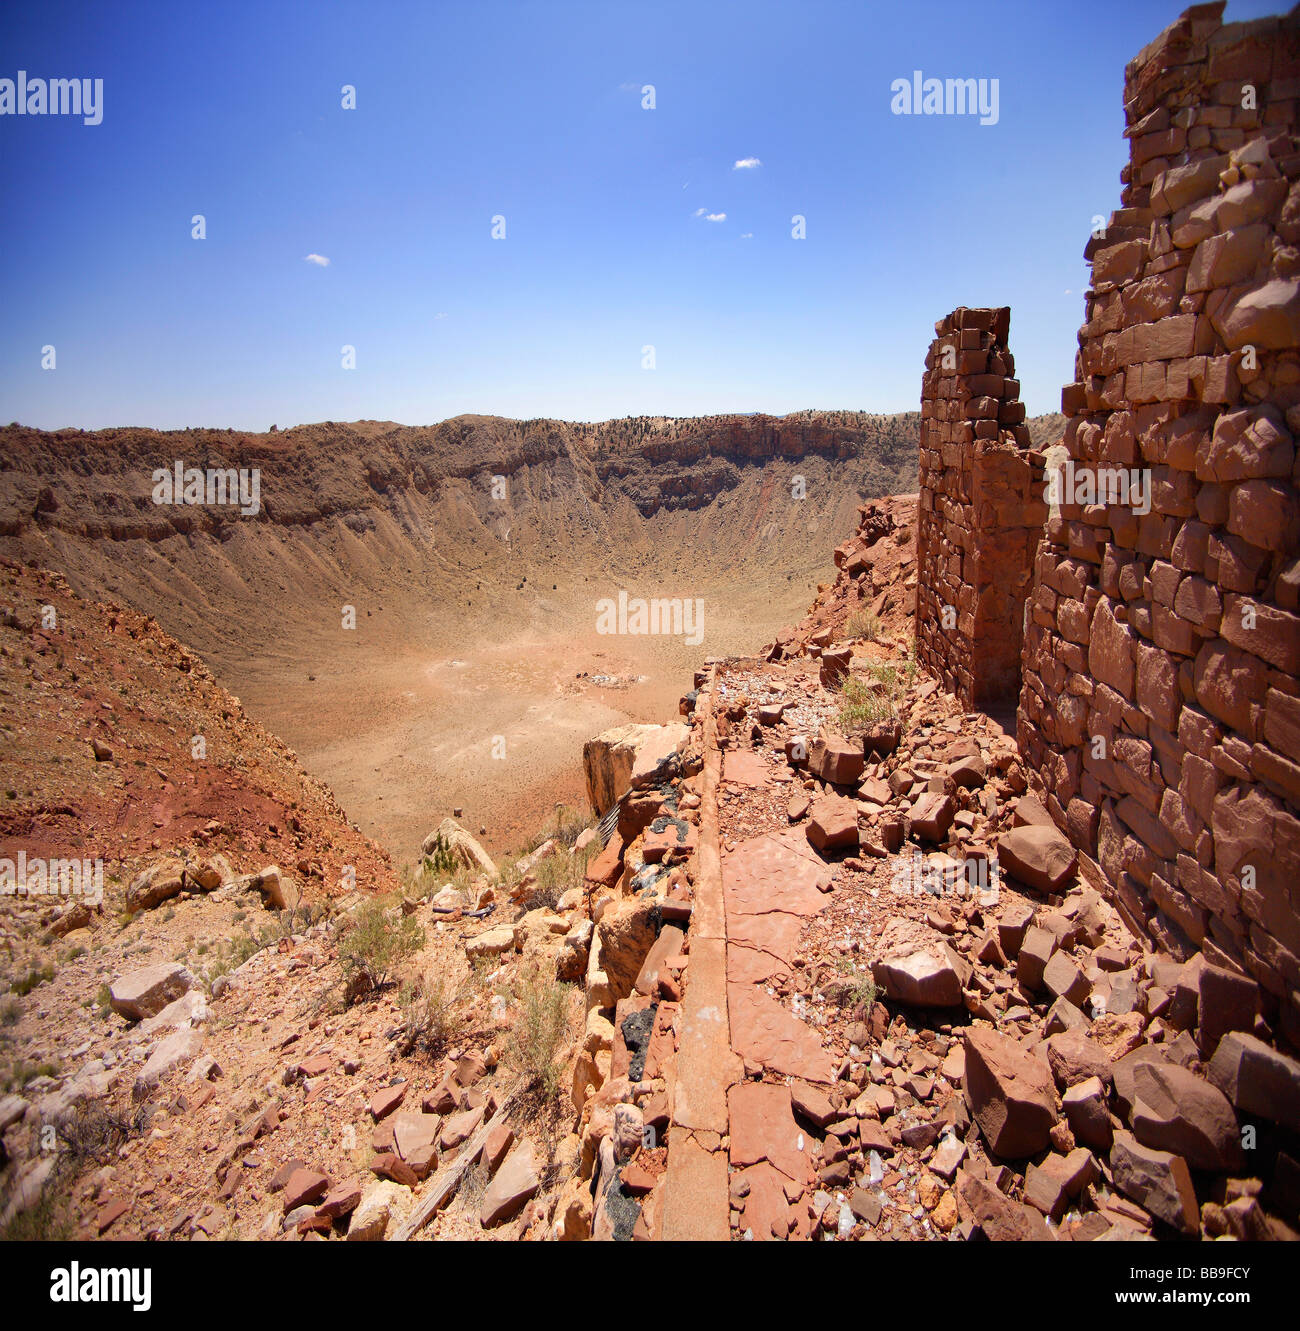 square image of crater and mine house,Arizona,usa - Stock Image